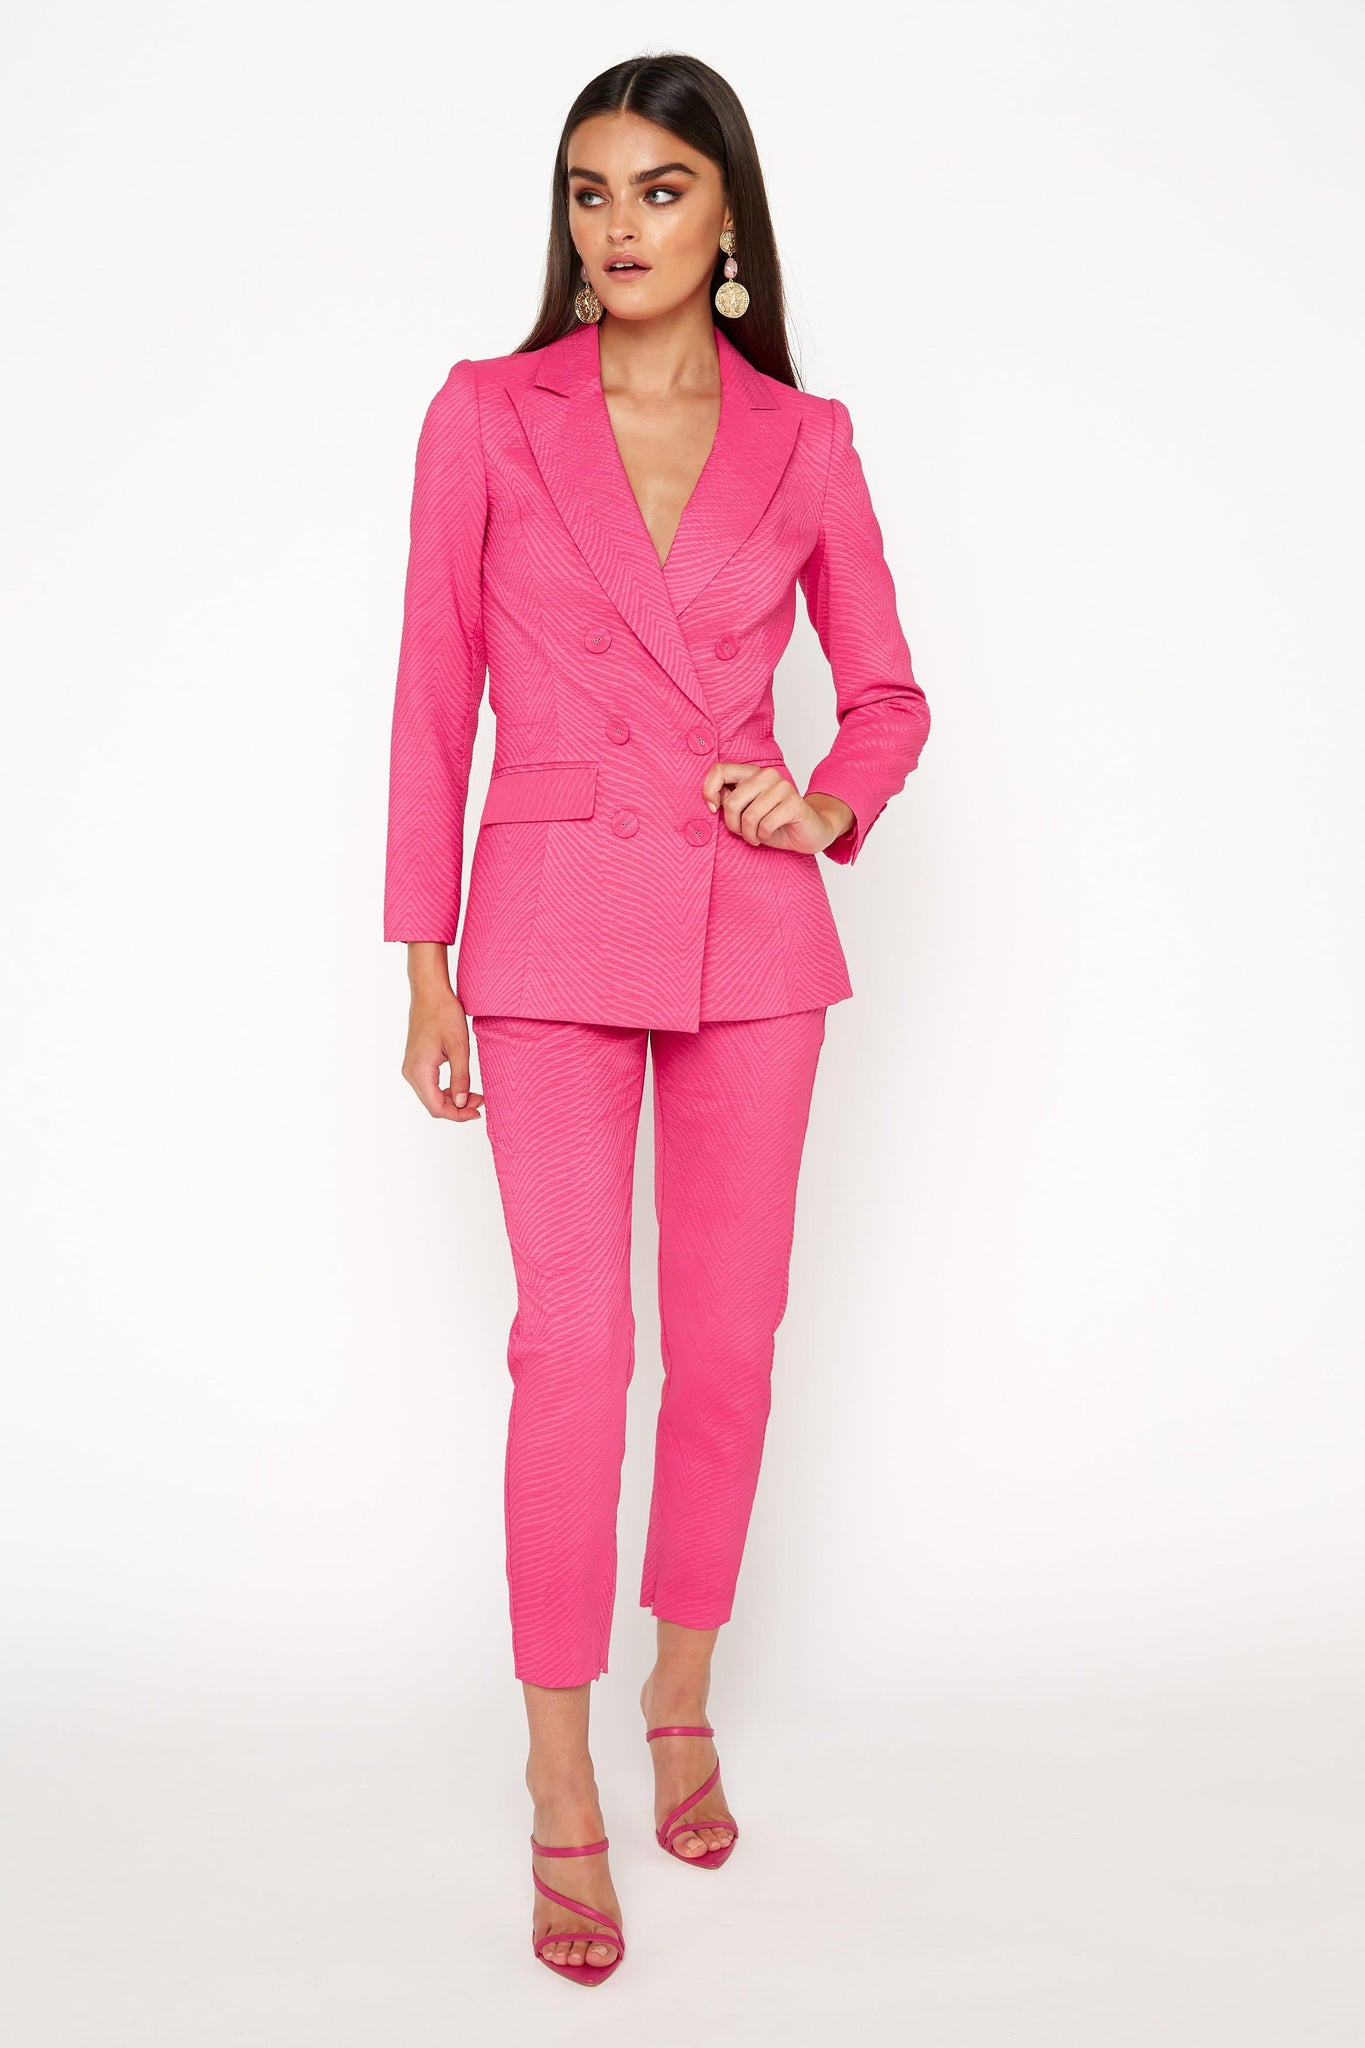 The Tea Party Blazer